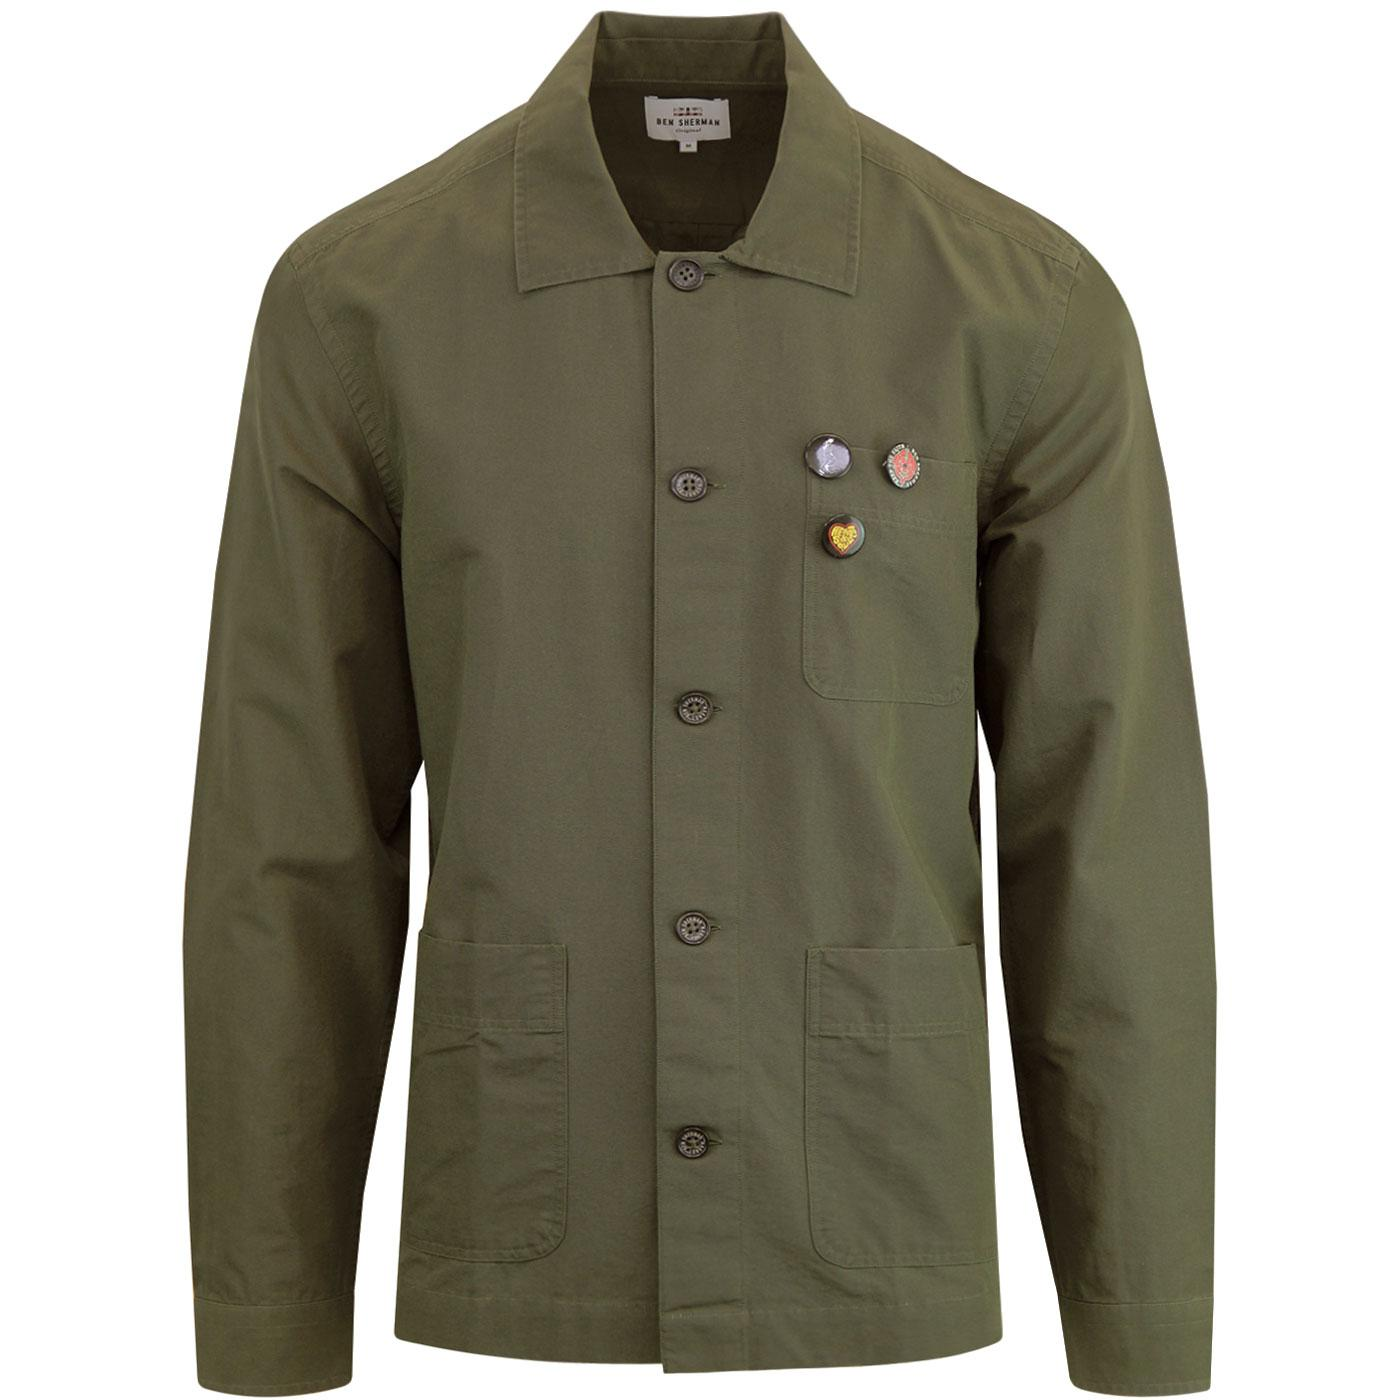 BEN SHERMAN Retro Mod Military Badged Overshirt DG